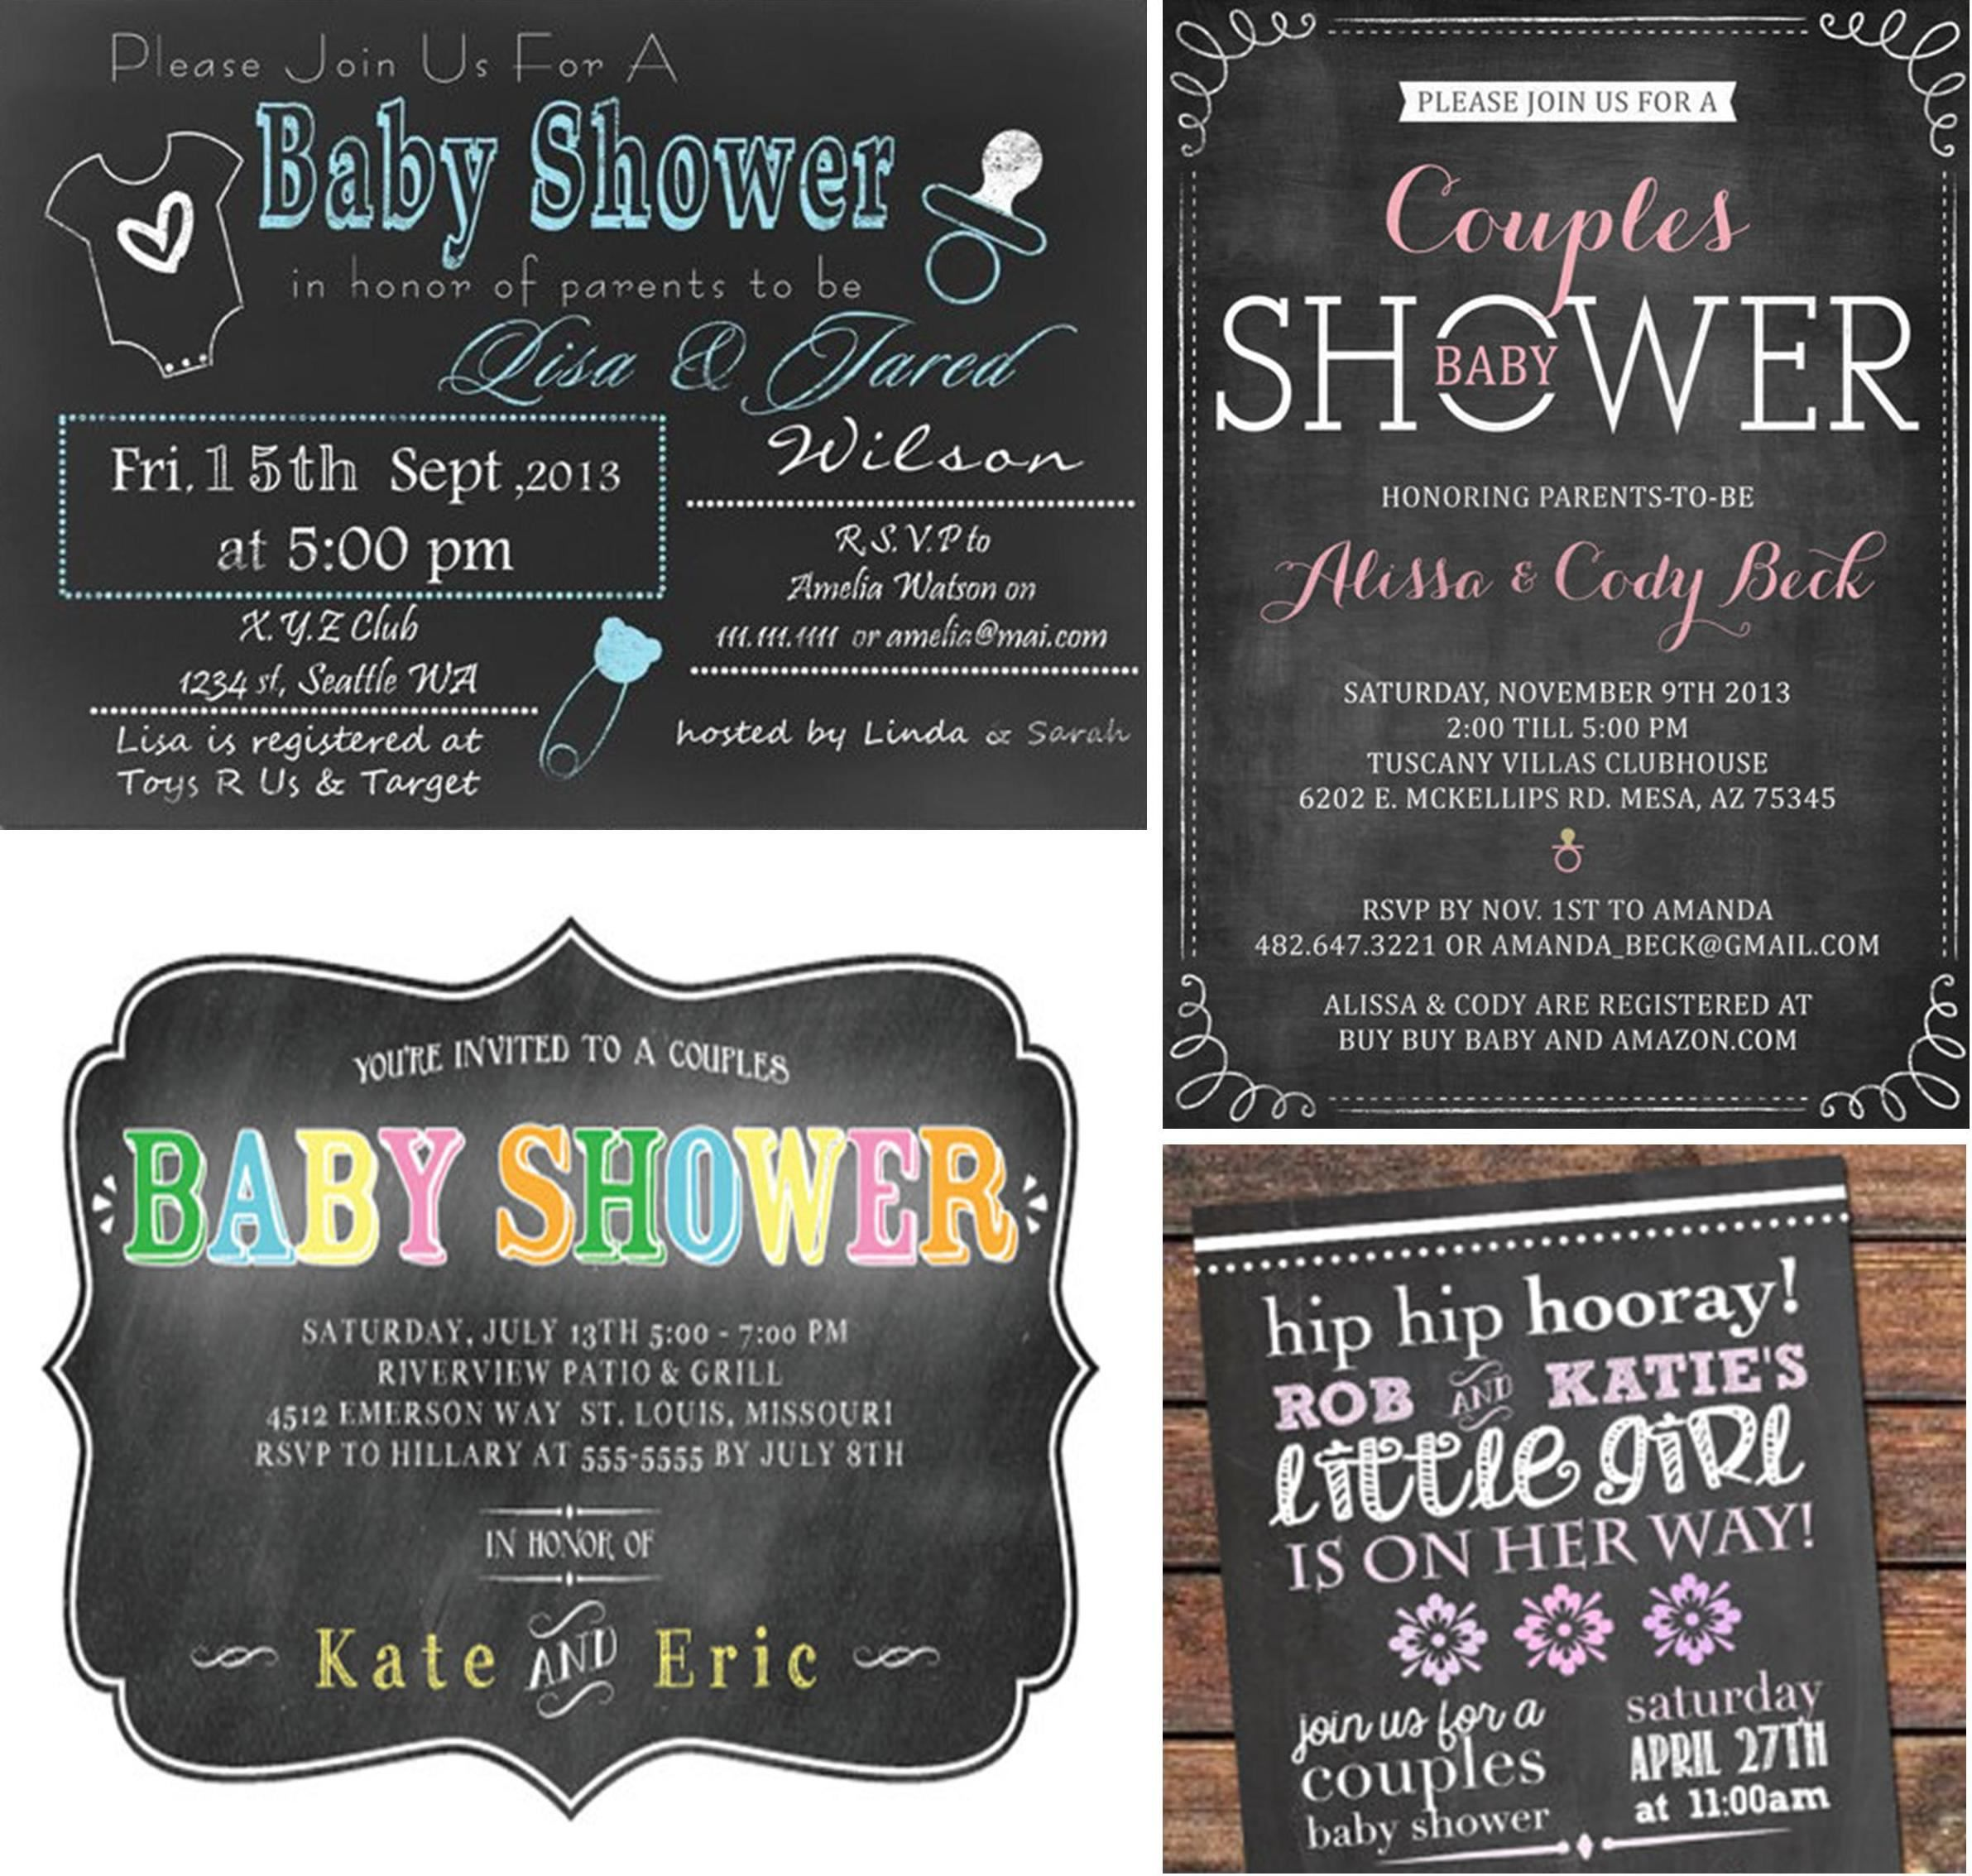 Couples baby shower invitations wording baby shower ideas couples baby shower invitations wording stopboris Images